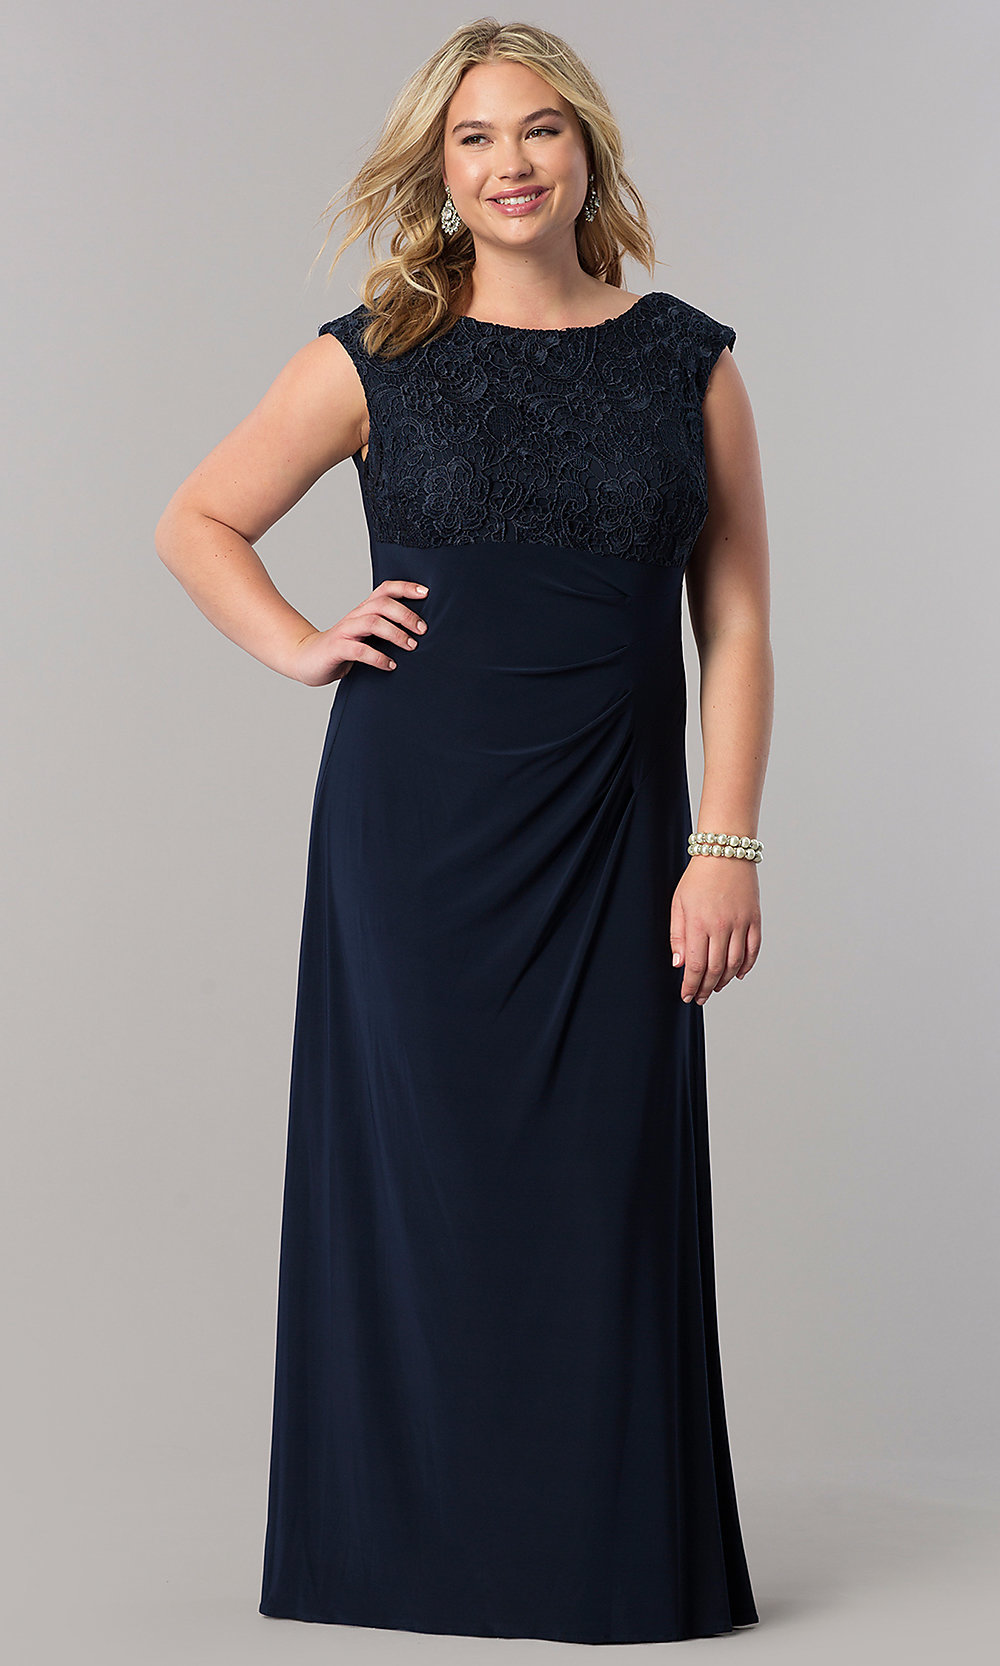 Plus-Size Mother-of-the-Bride Navy Dress - PromGirl